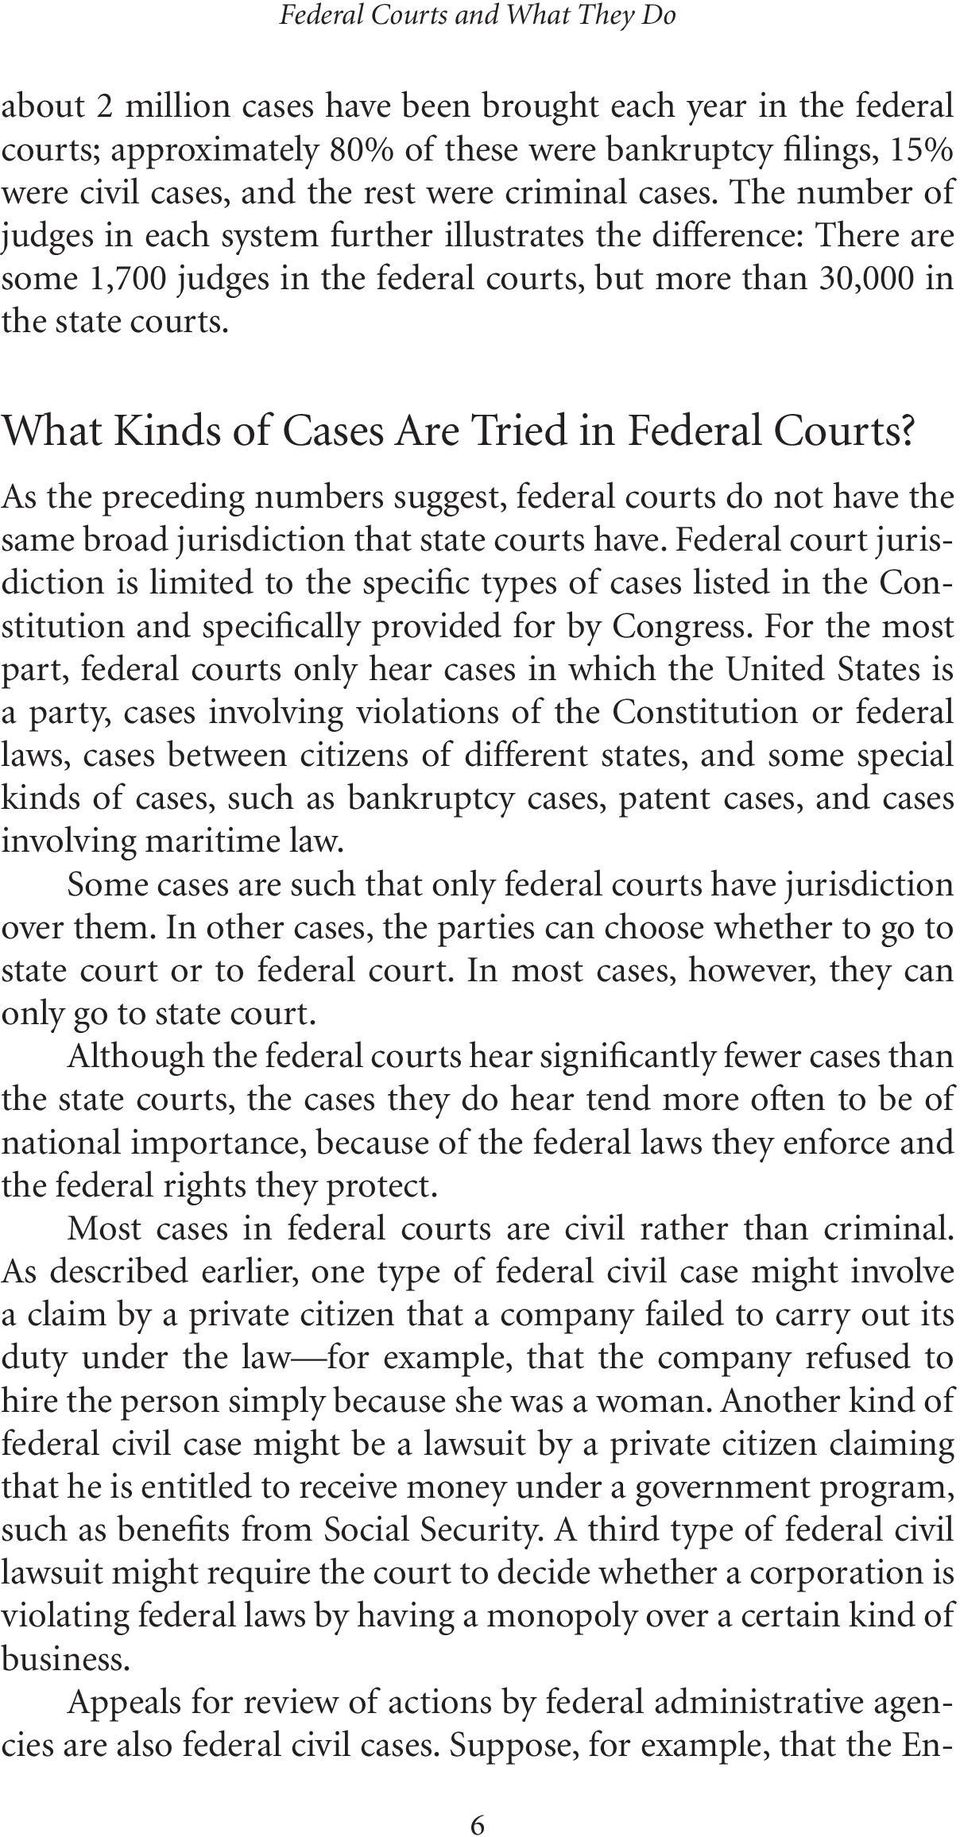 What Kinds of Cases Are Tried in Federal Courts? As the preceding numbers suggest, federal courts do not have the same broad jurisdiction that state courts have.